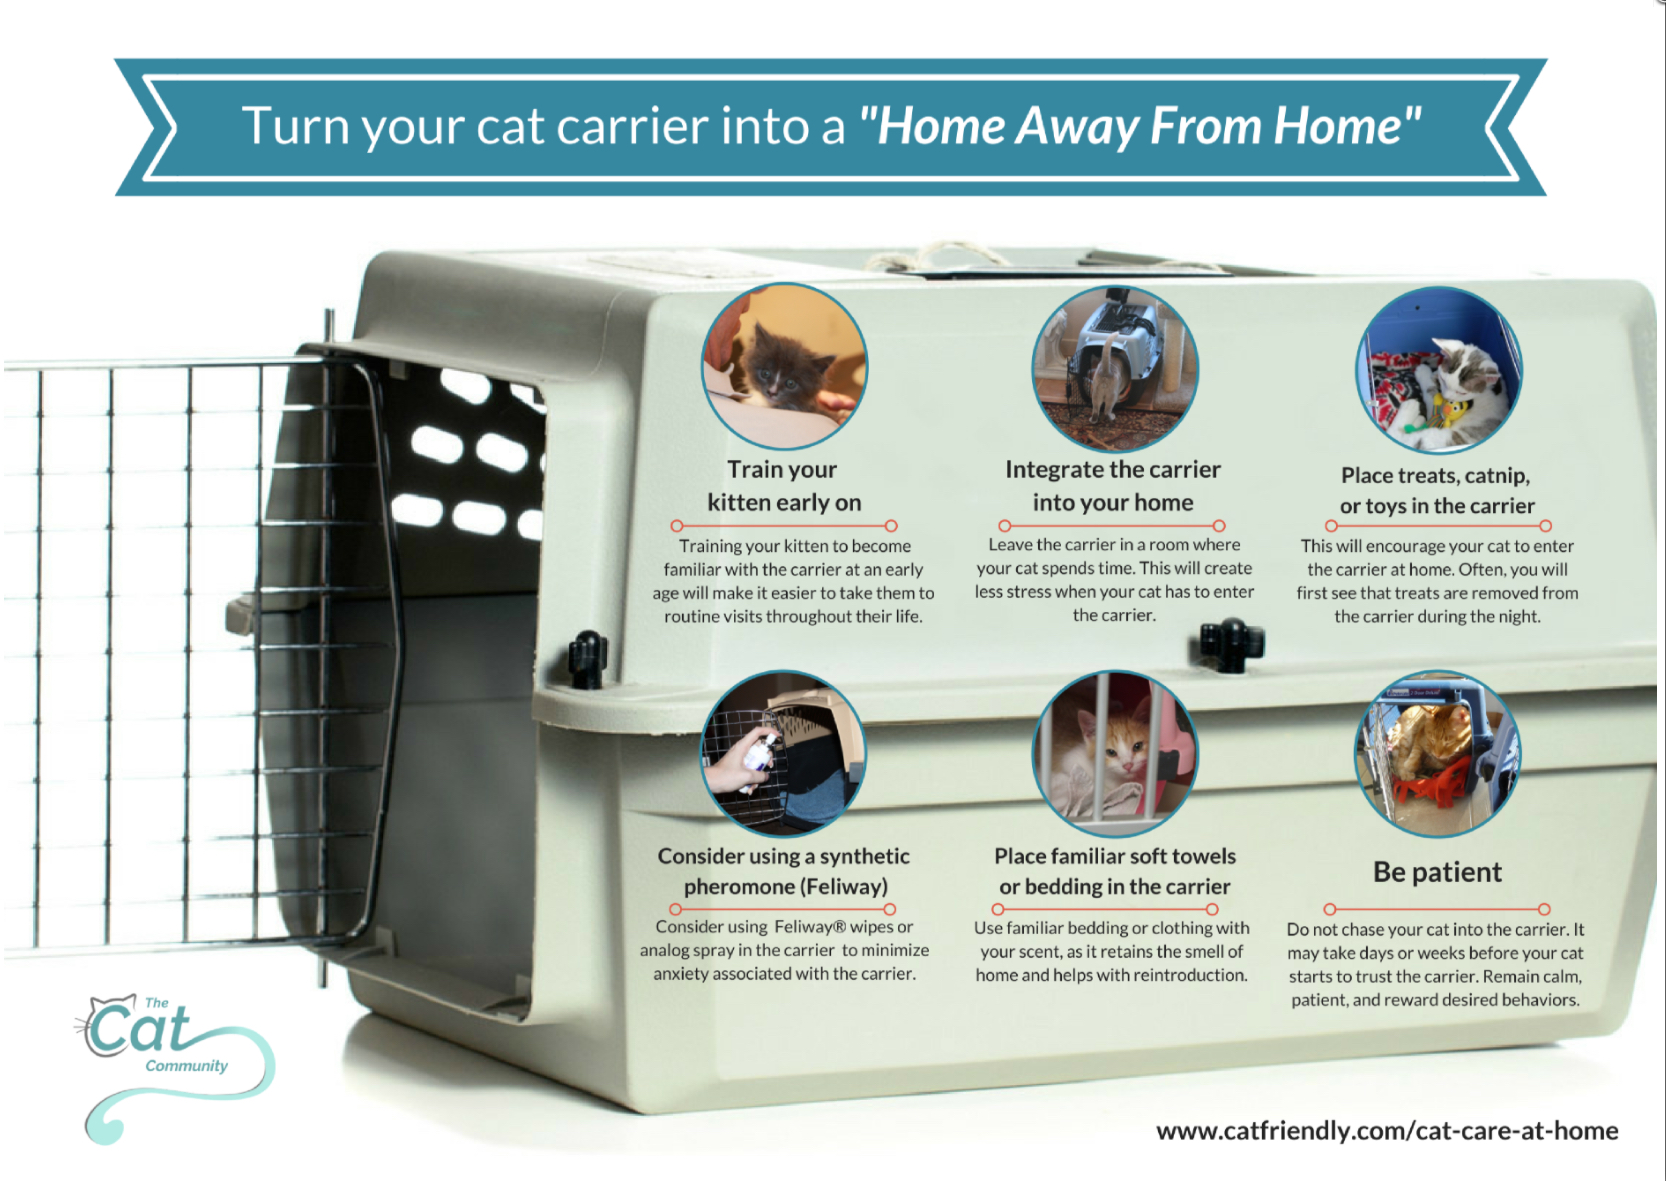 How to make your carrier a home away from home #Cat2VetDay